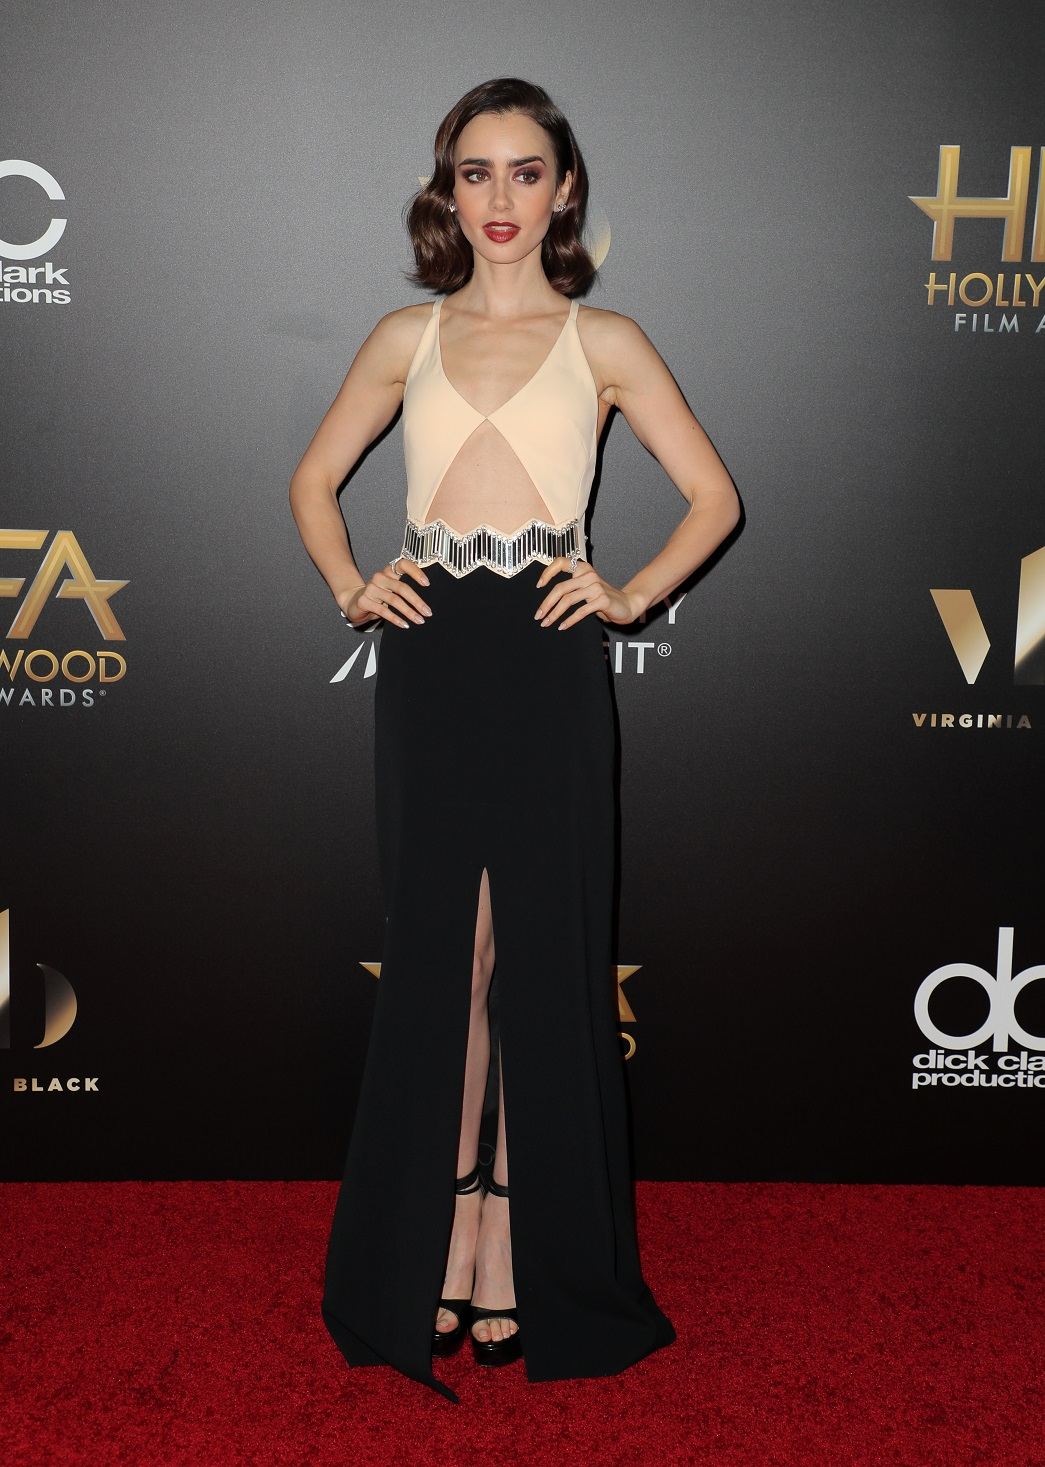 Lily Collins channelled old Hollywood glamour in an eclectic cream and black dress slit to the waist as she arrived at the Hollywood Film Awards on Sunday night